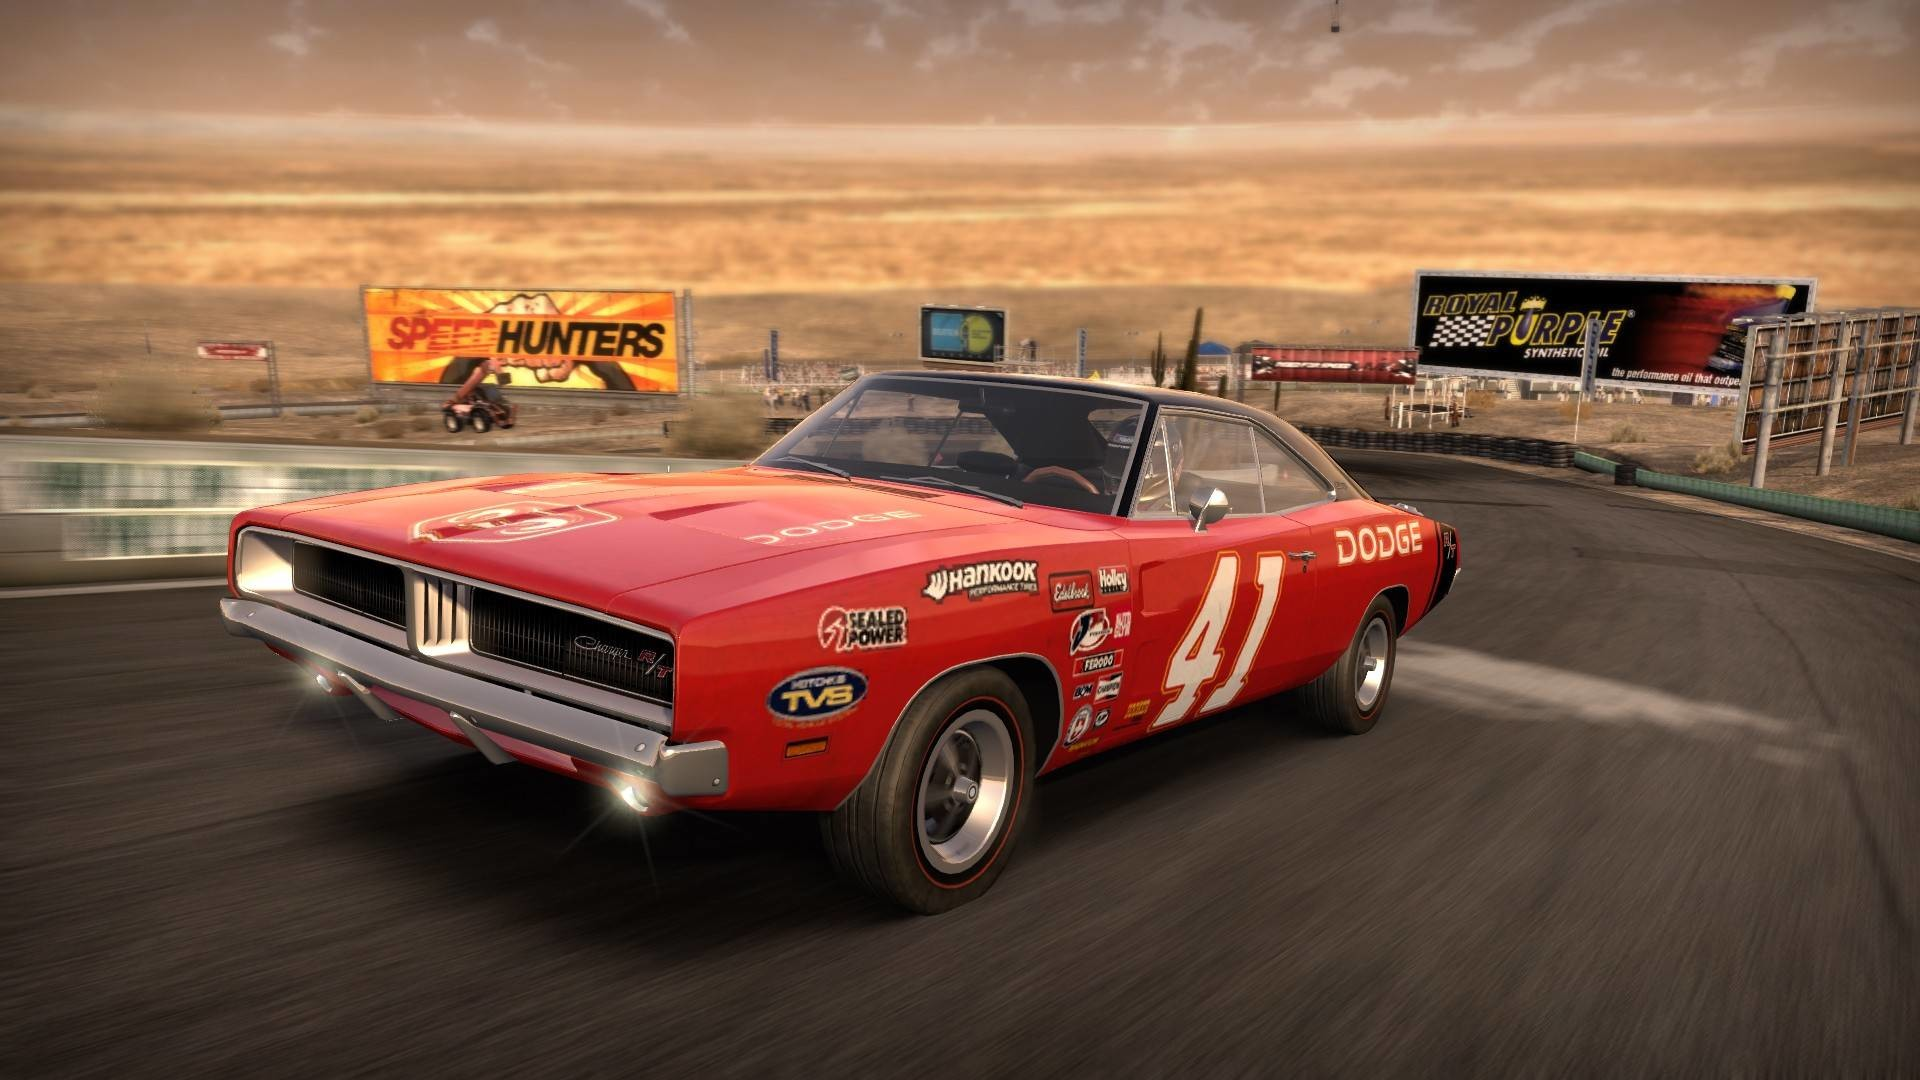 1920x1080 1969 Dodge Charger R/T racing game graphic.